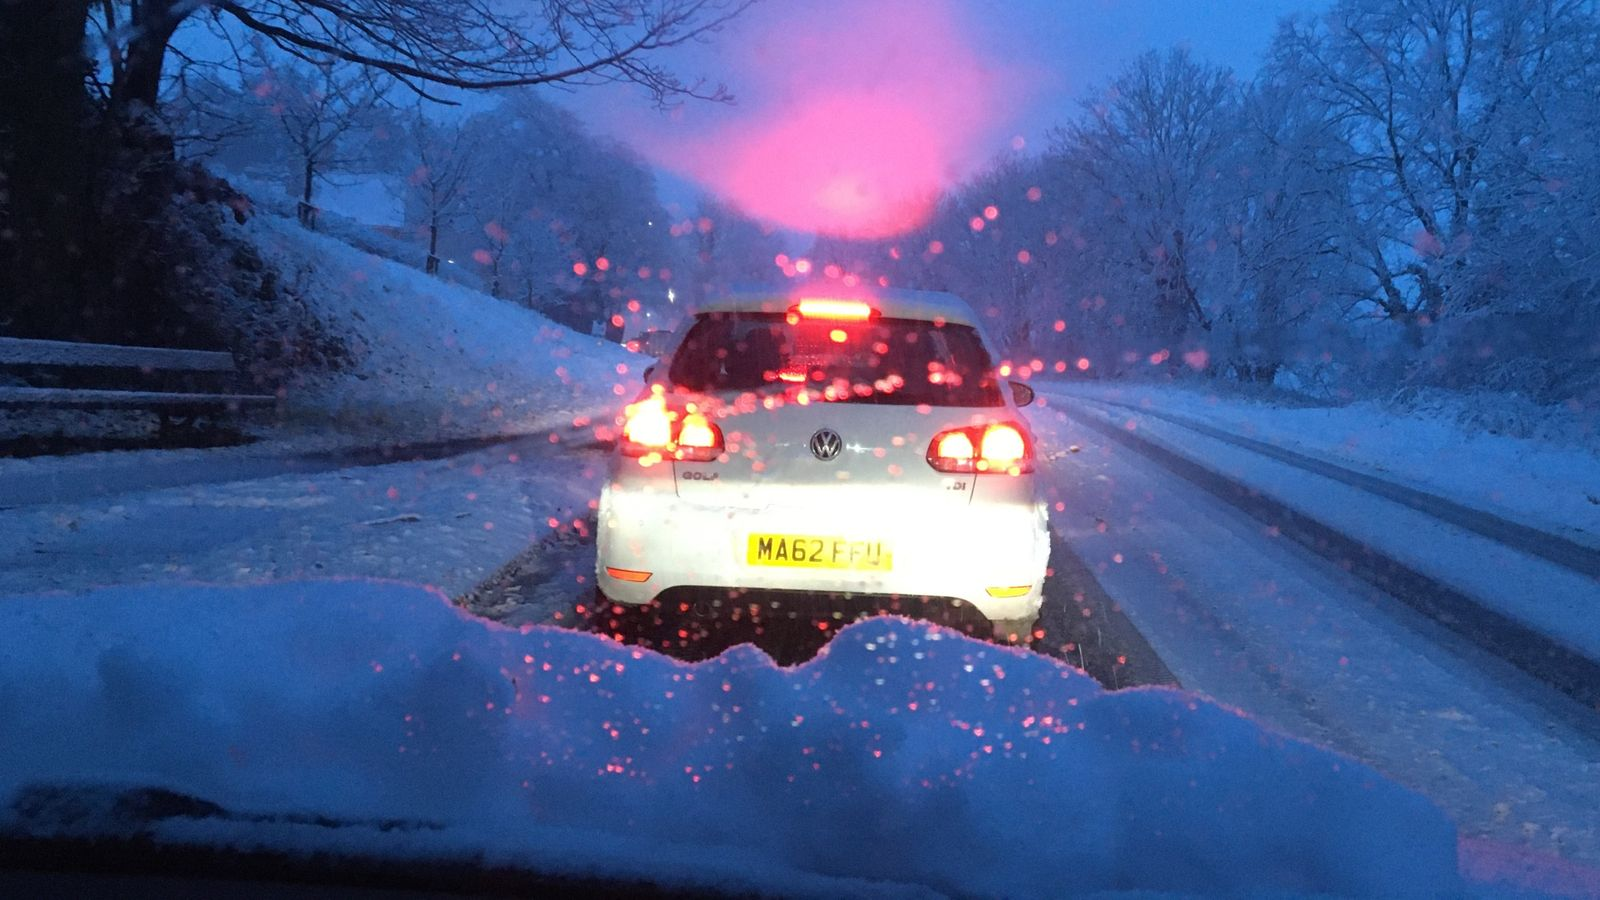 UK weather: Snow arrives in parts of northern England and Scotland